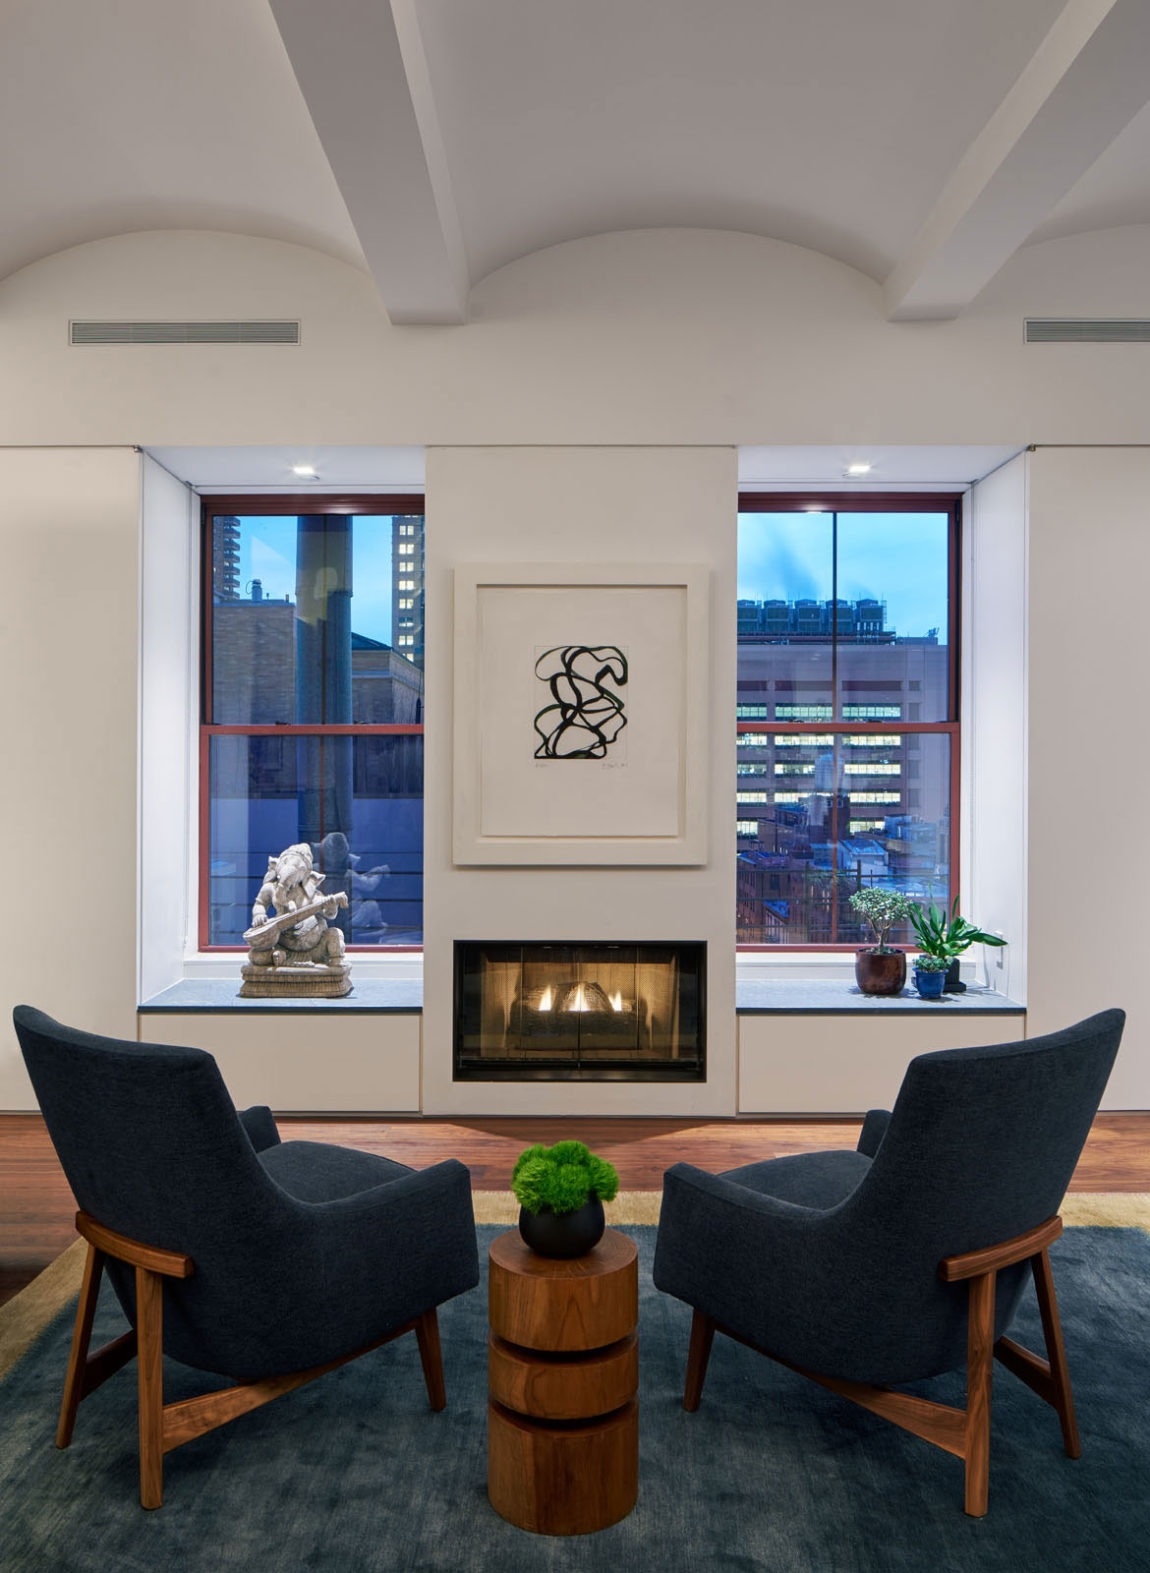 Tribeca Residence by Gluckman Tang Architects (11)